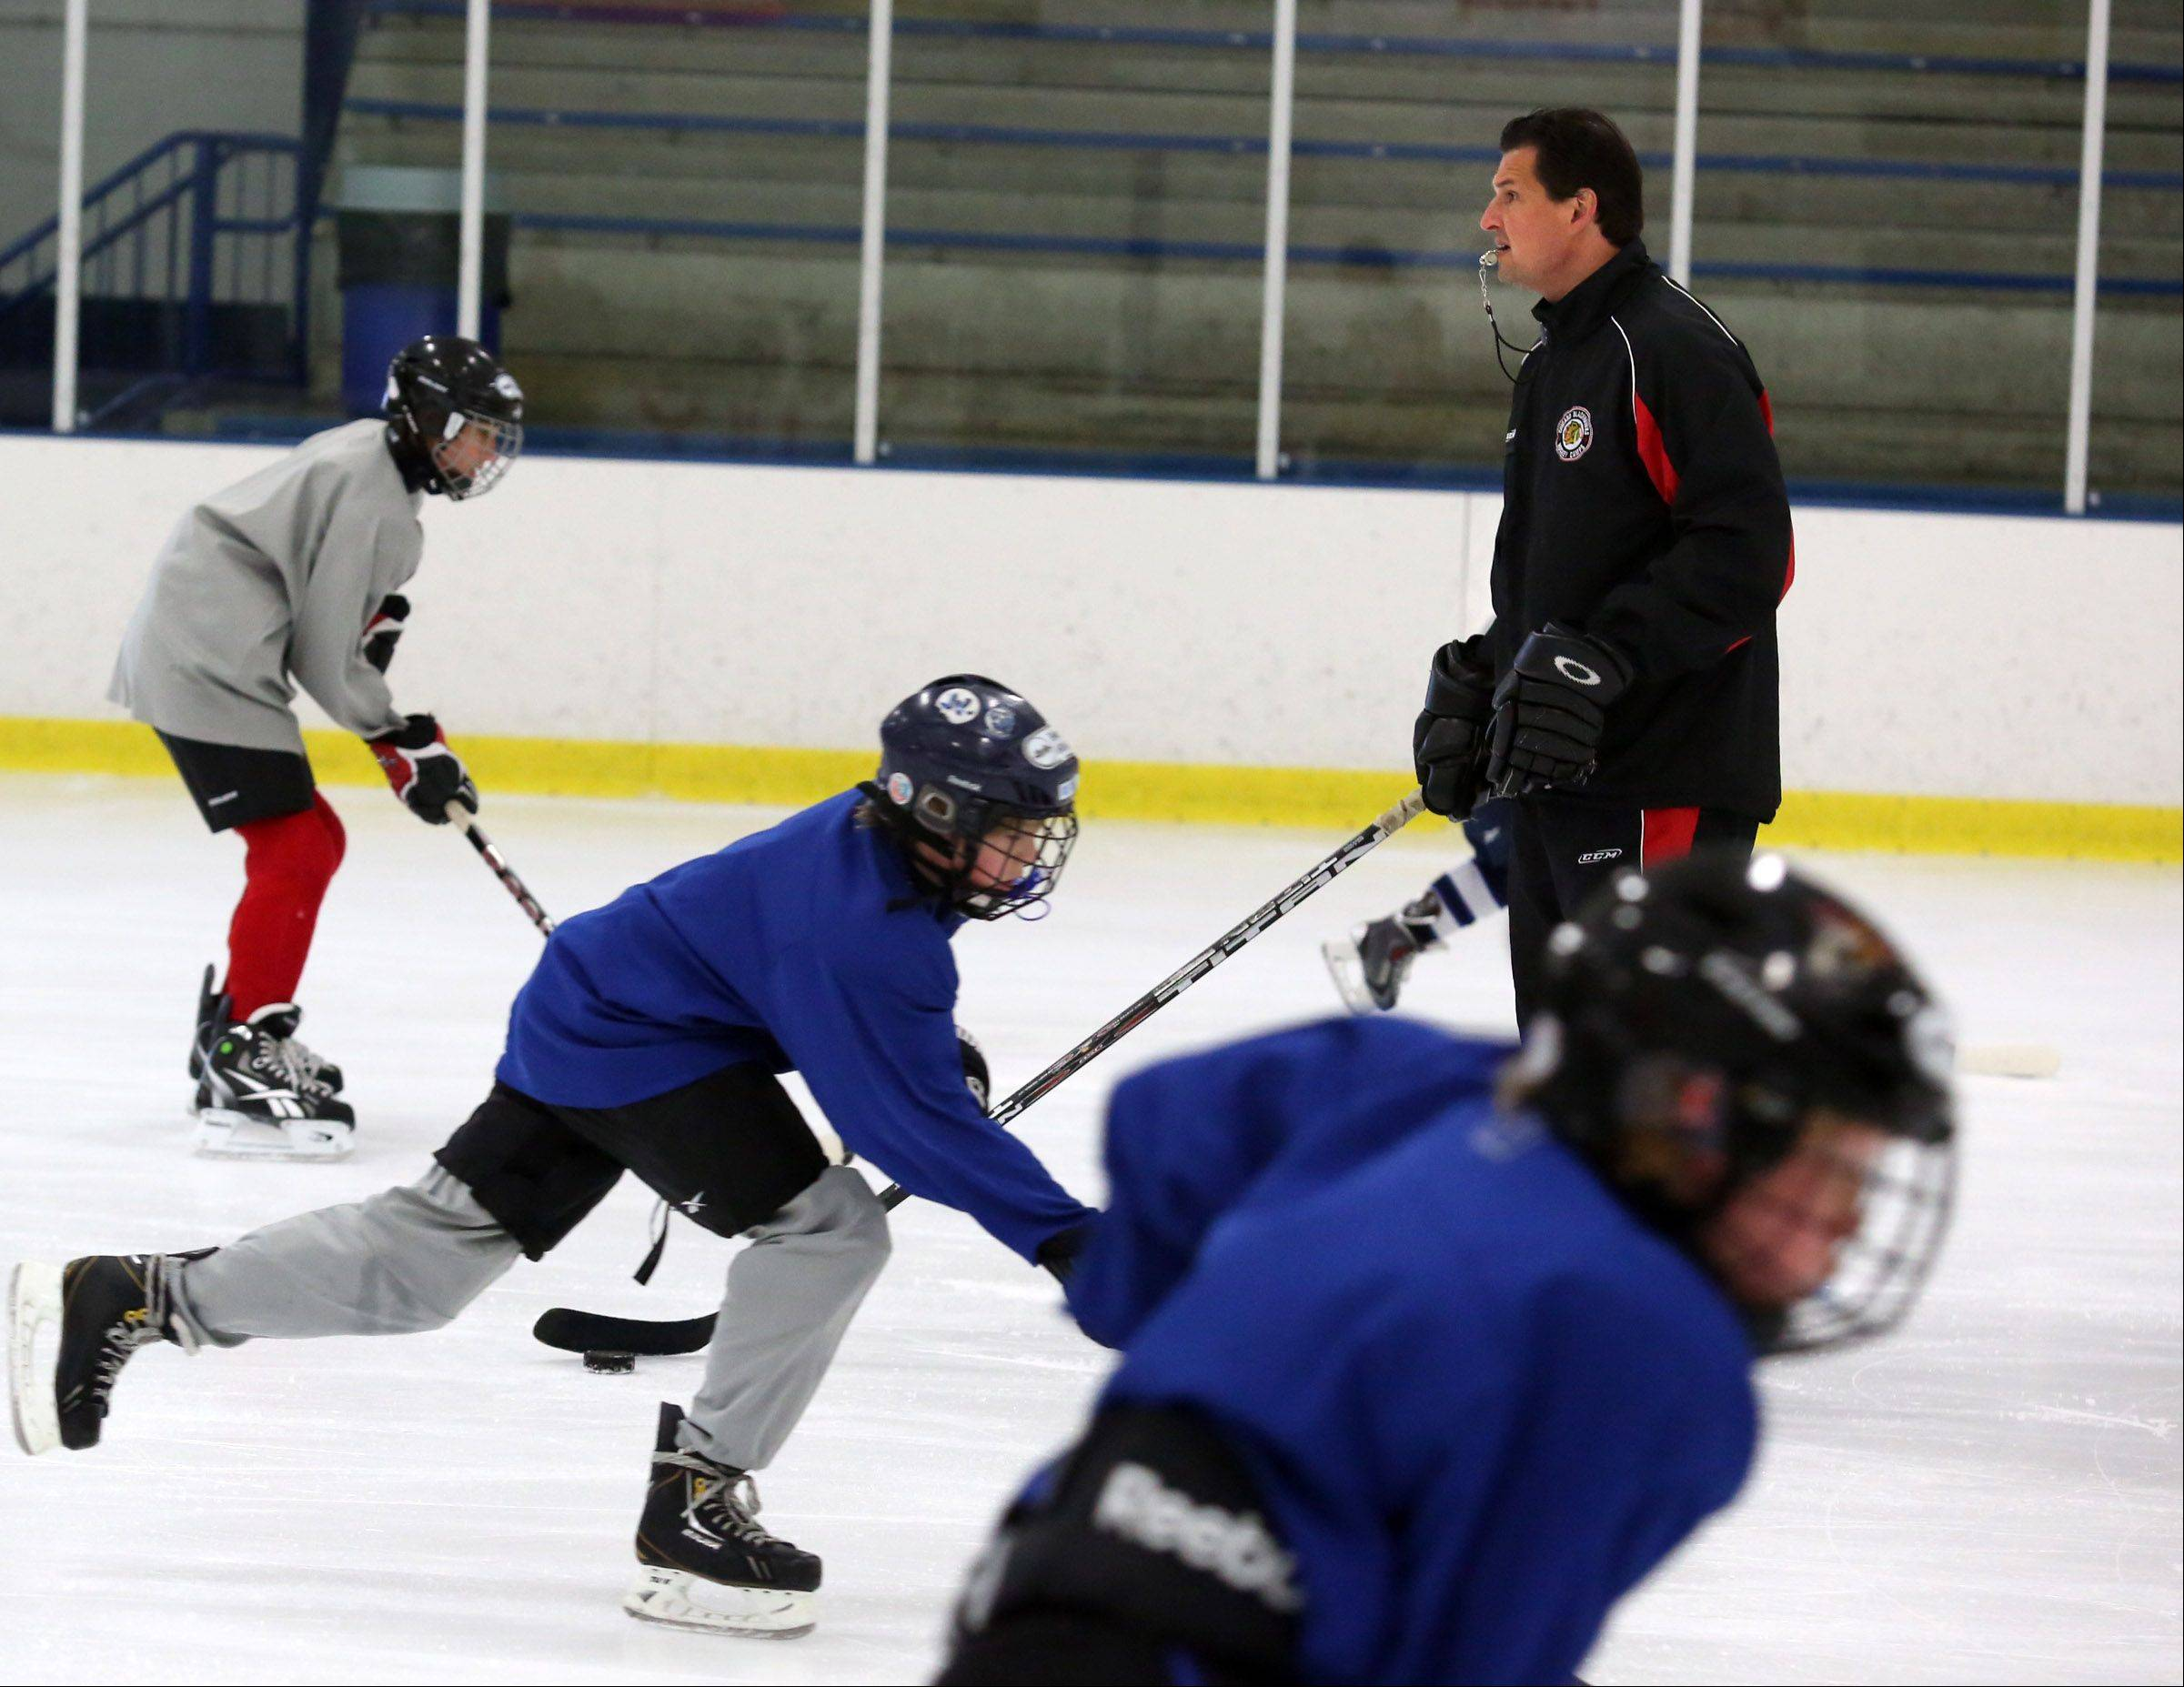 Eddie Olczyk, television color analyst for the Chicago Blackhawks, runs drills during a hockey camp at Glacier Ice Arena in Vernon Hills on Friday.